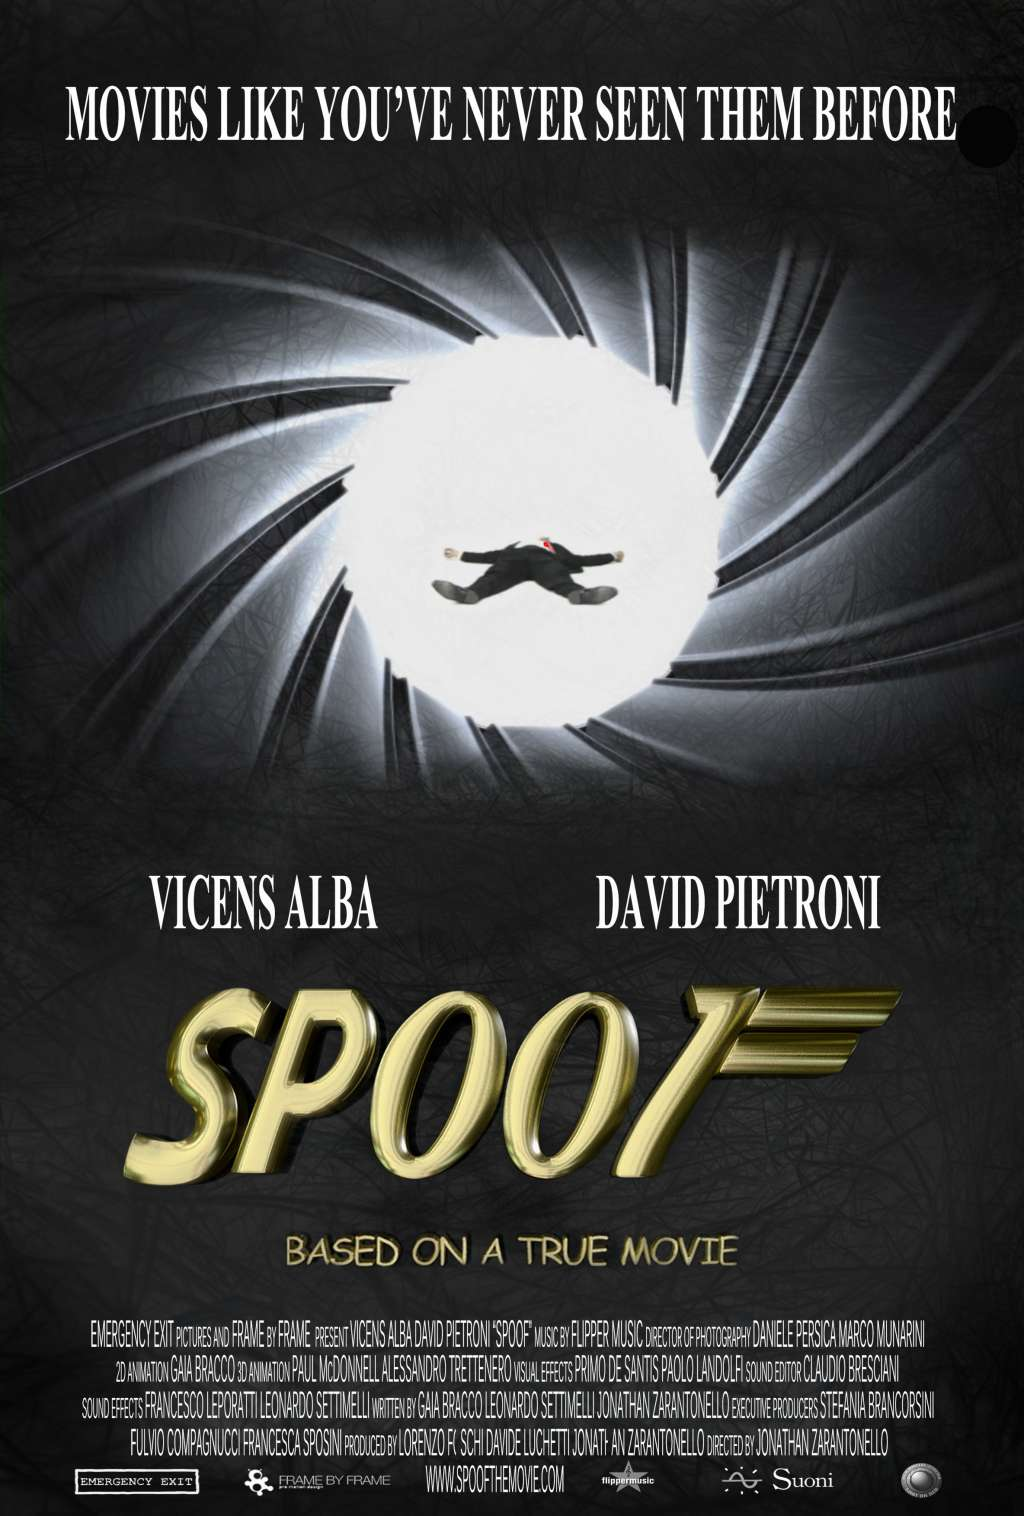 Spoof: Based on a True Movie kapak